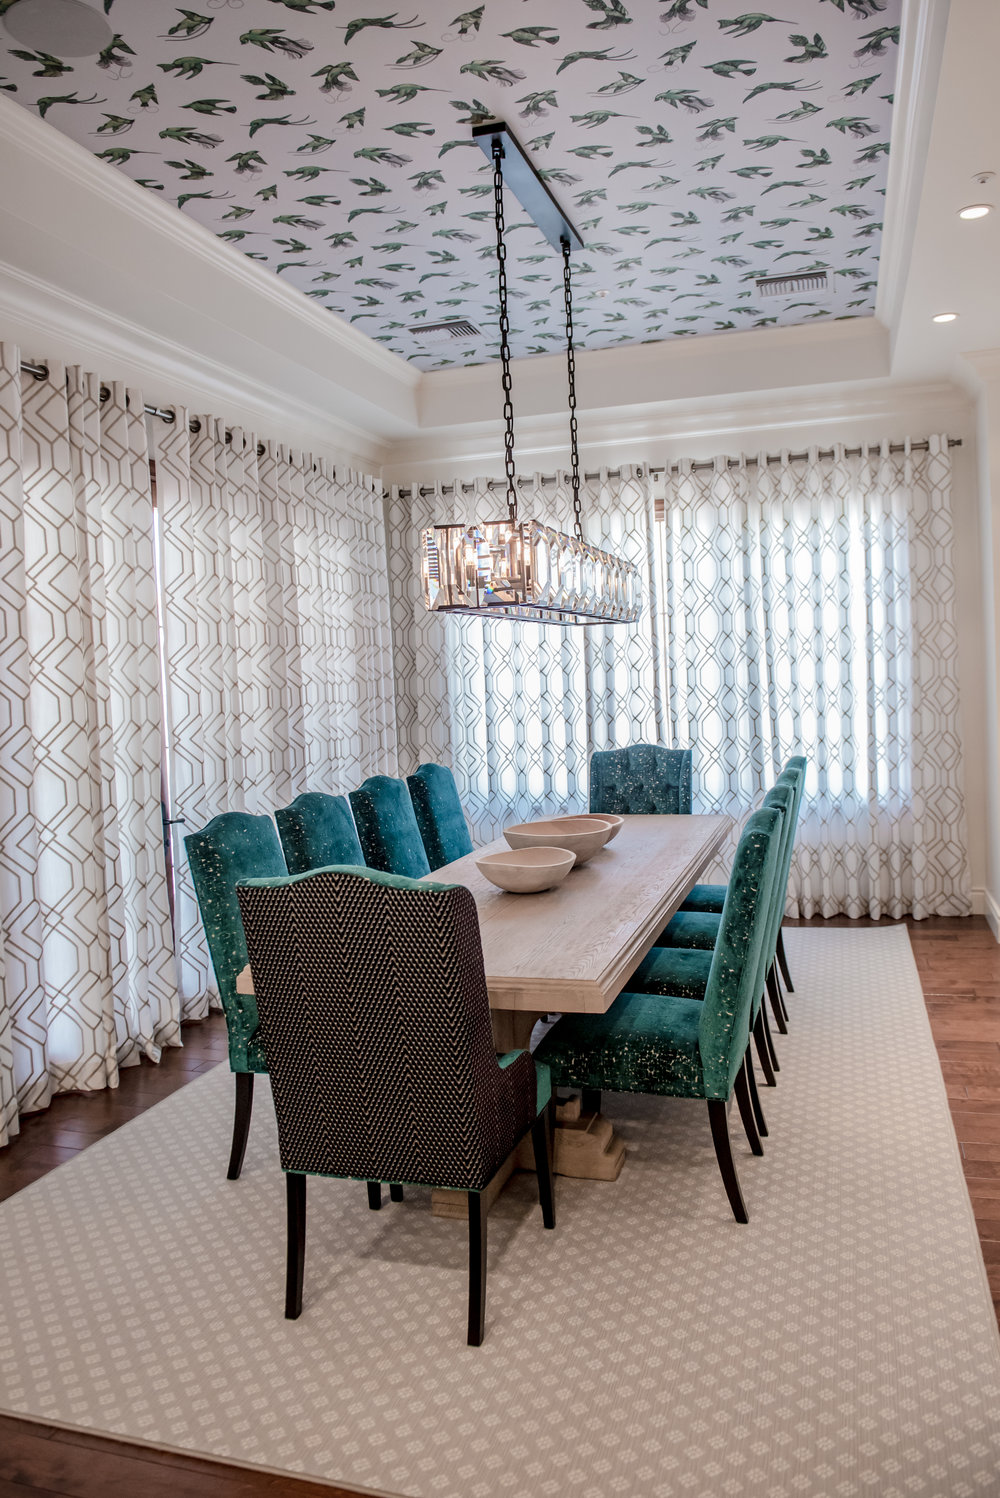 11+Dining+Wallpaper+Ceiling+Teal+Drapery+CrystalChandelier+Accessories.jpg